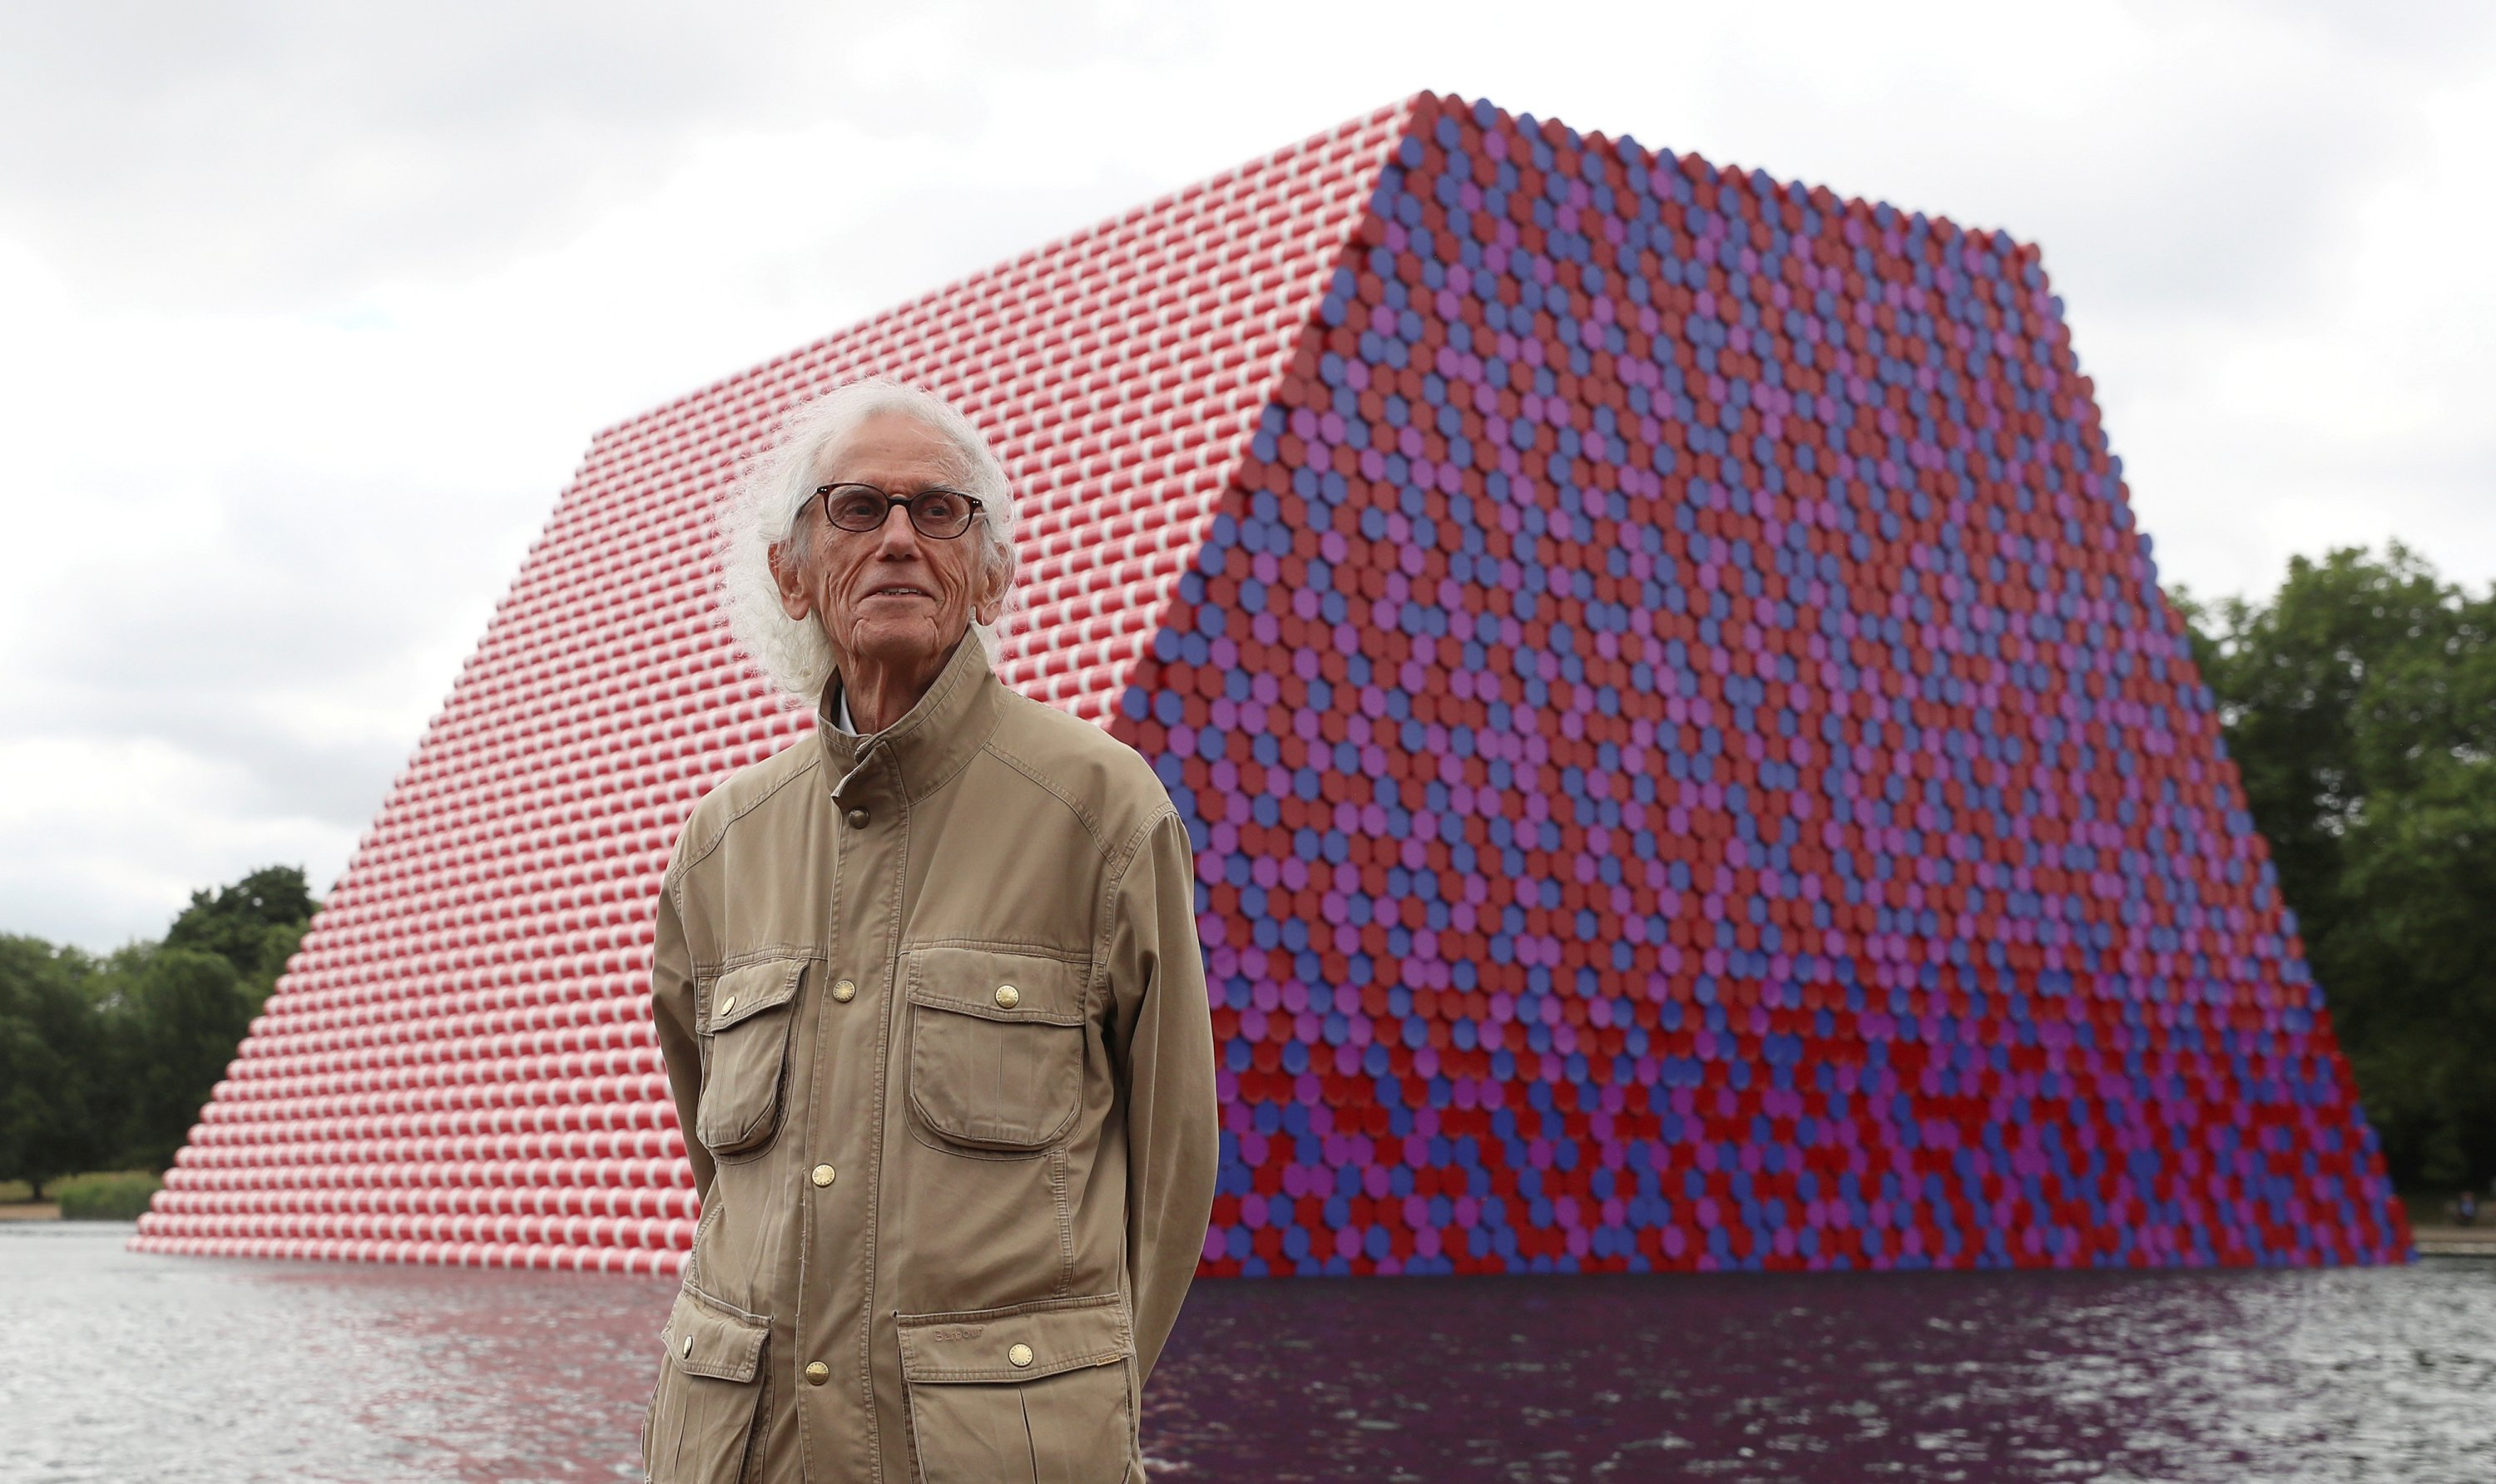 Christo Artist Who Wrapped The World Dies At 84 Daily Sabah